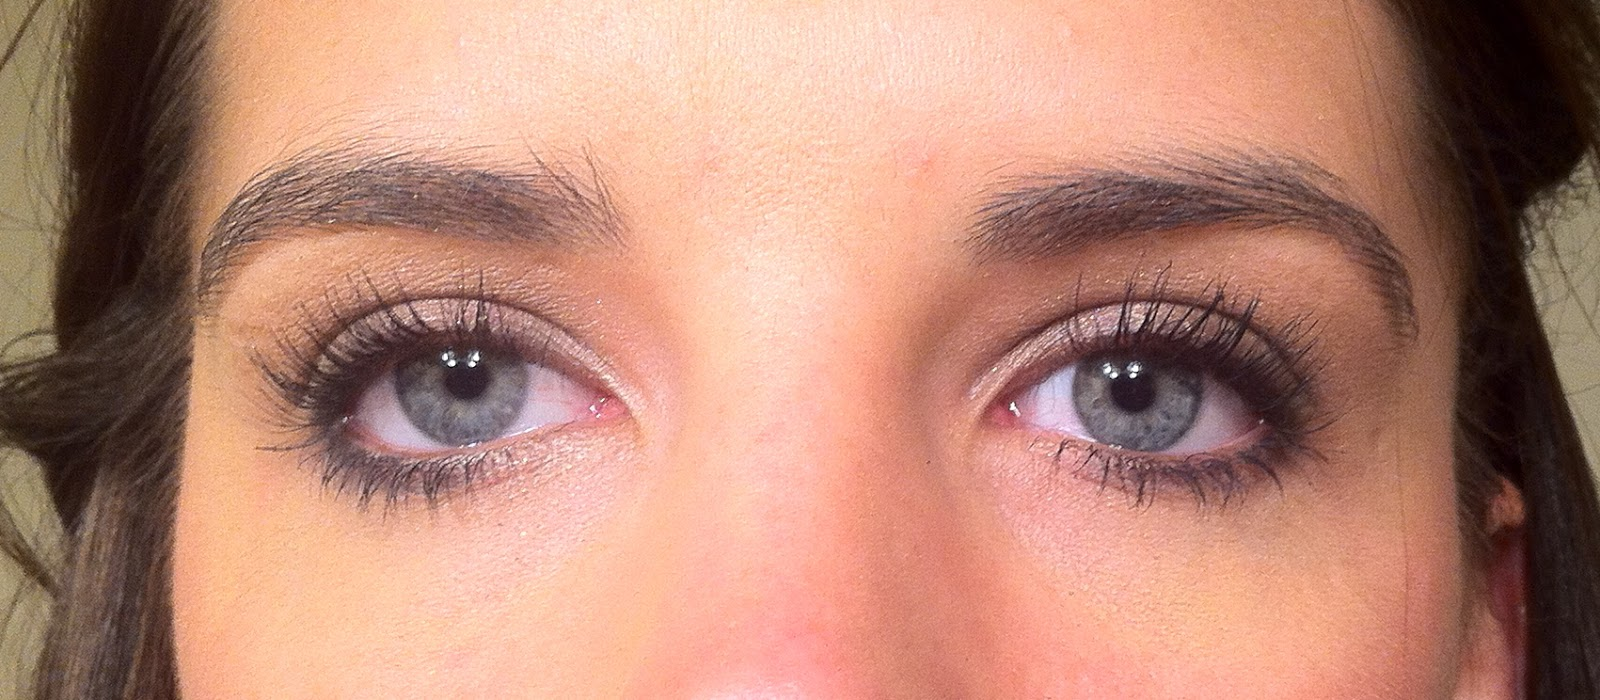 how to make your eyelashes grow in 2 days